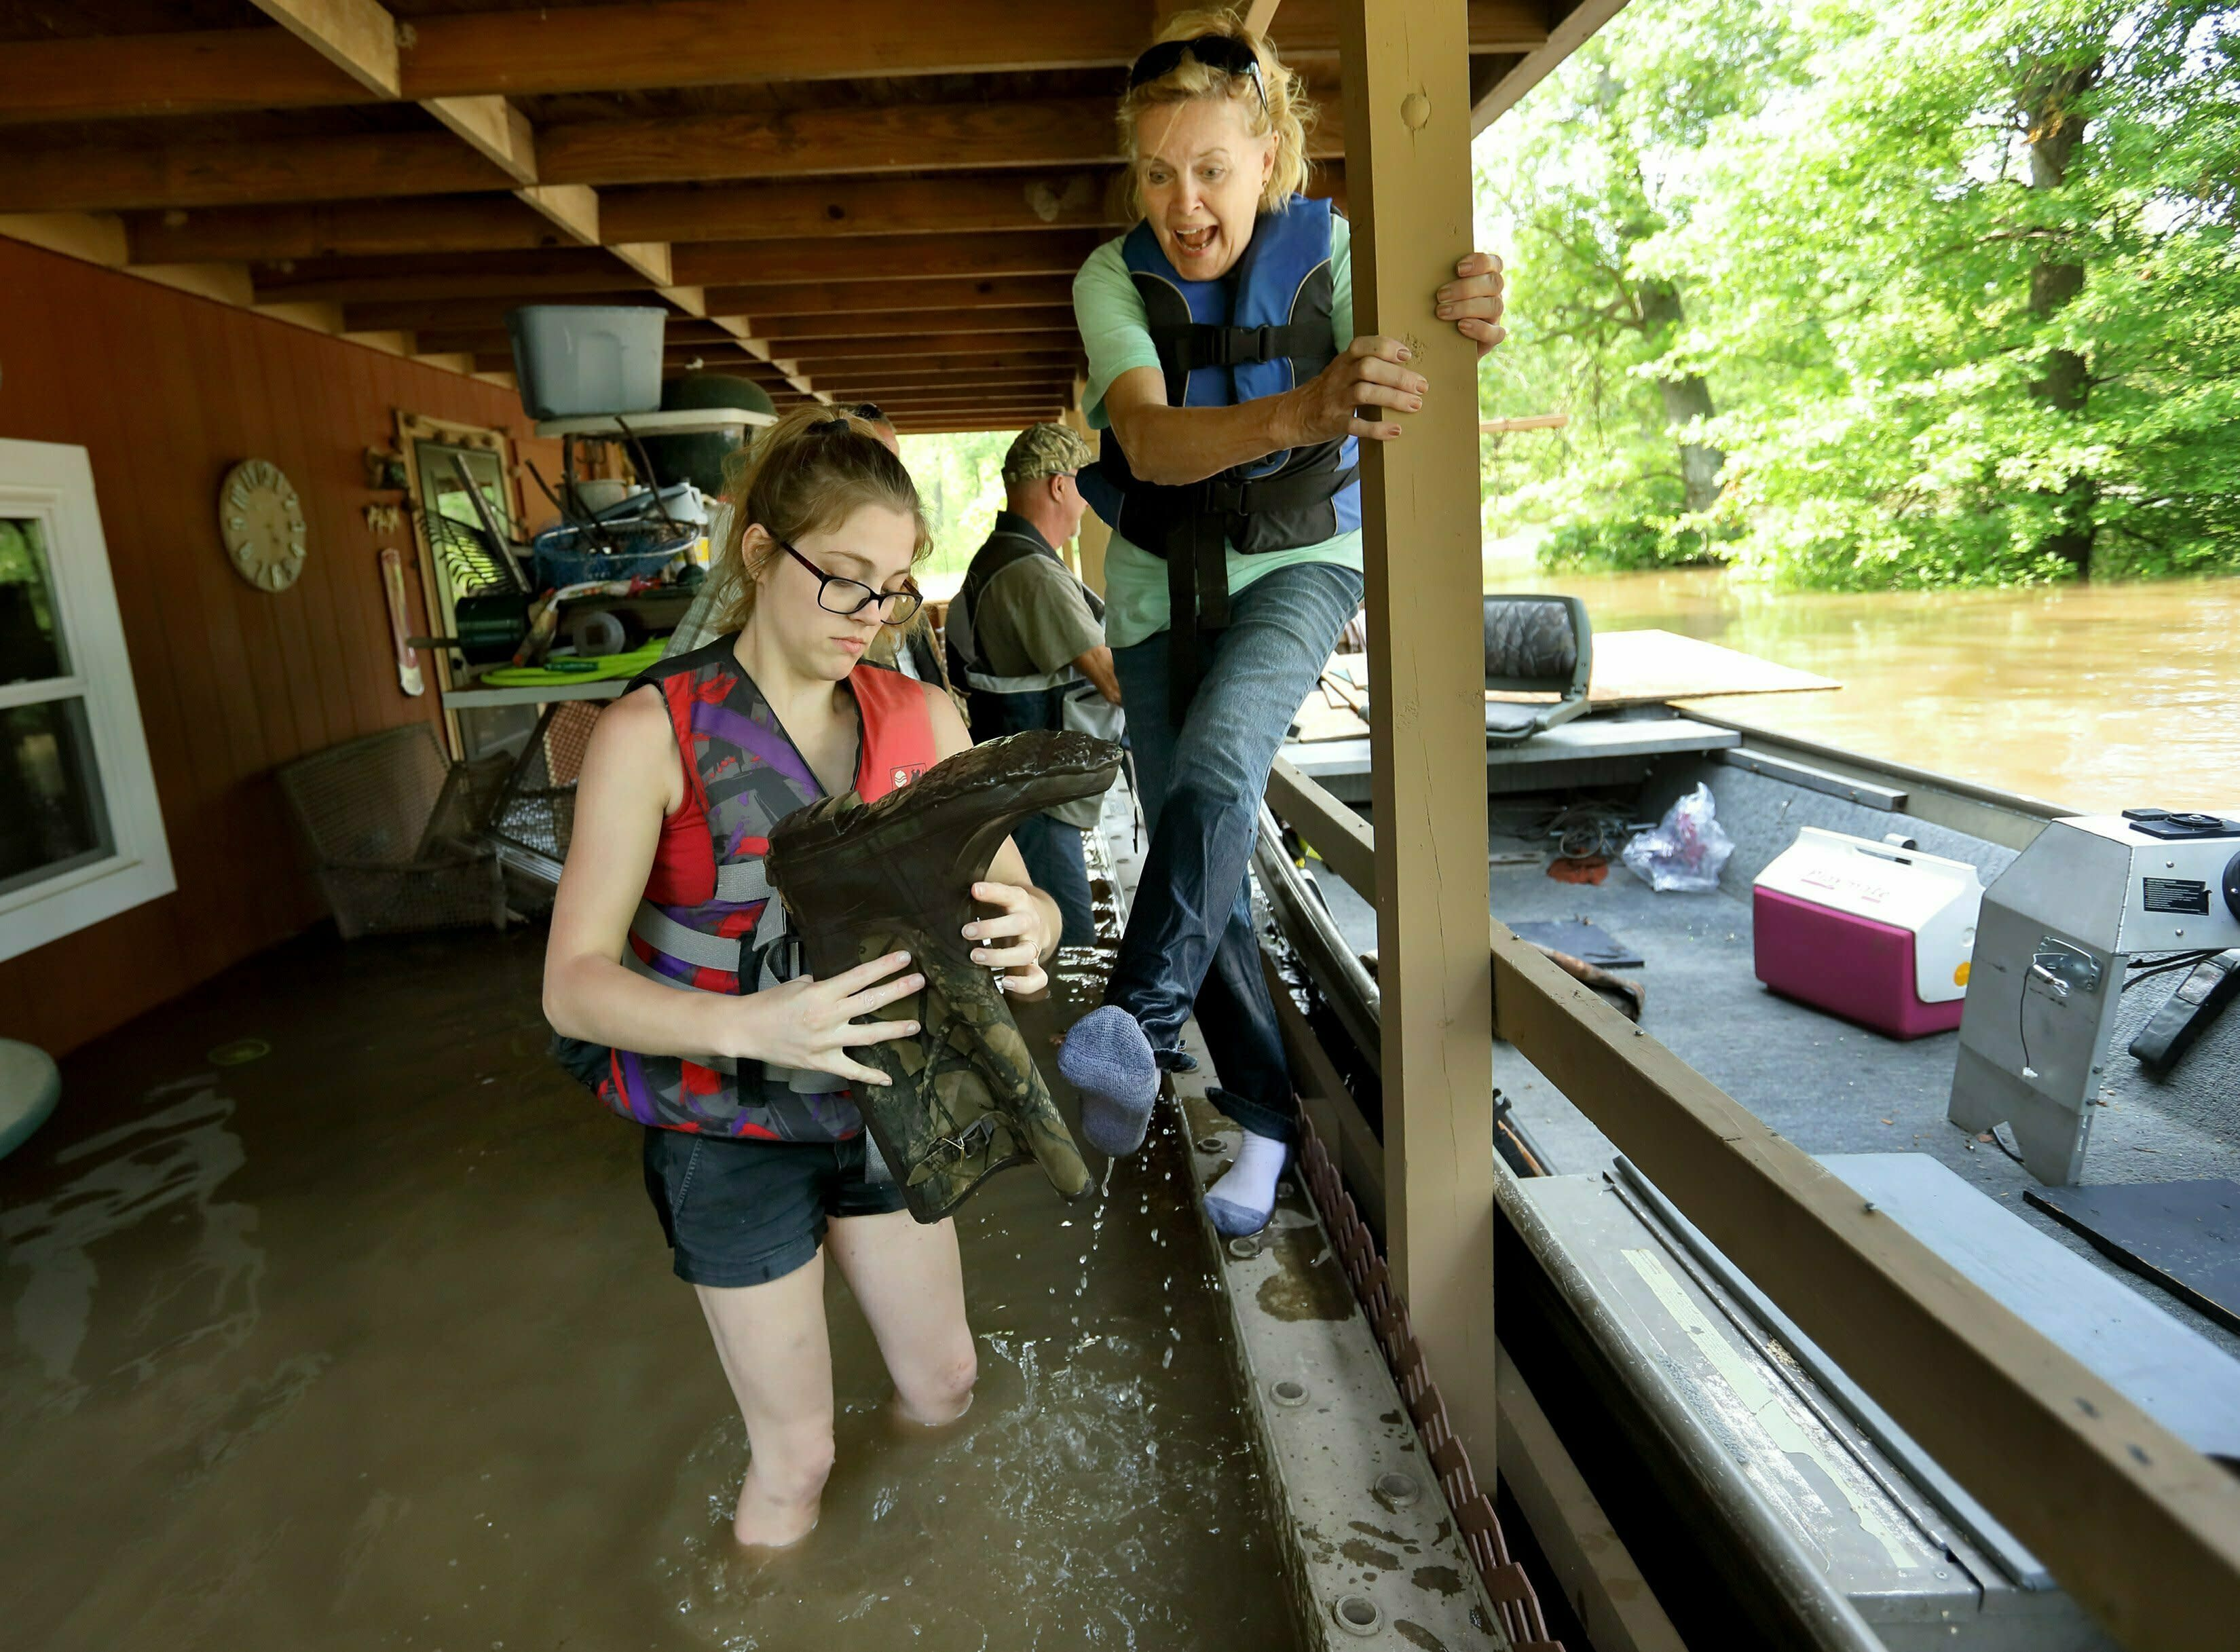 Nearly 400 Roads Close in Missouri as Flooded Mississippi River